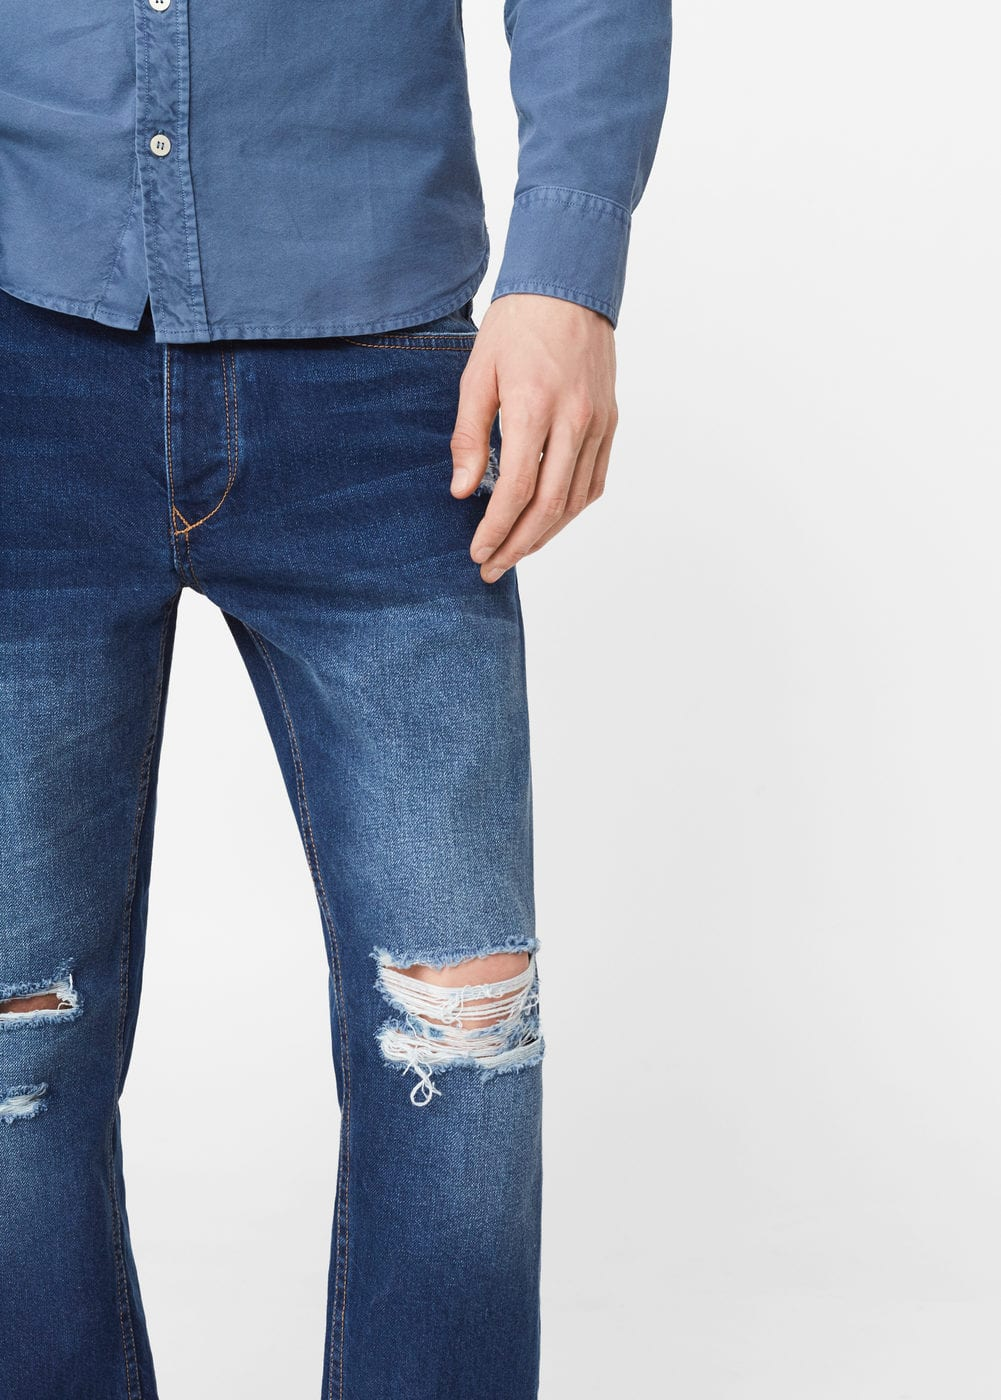 Jeans ethan slim-fit rotos decorativos | MANGO